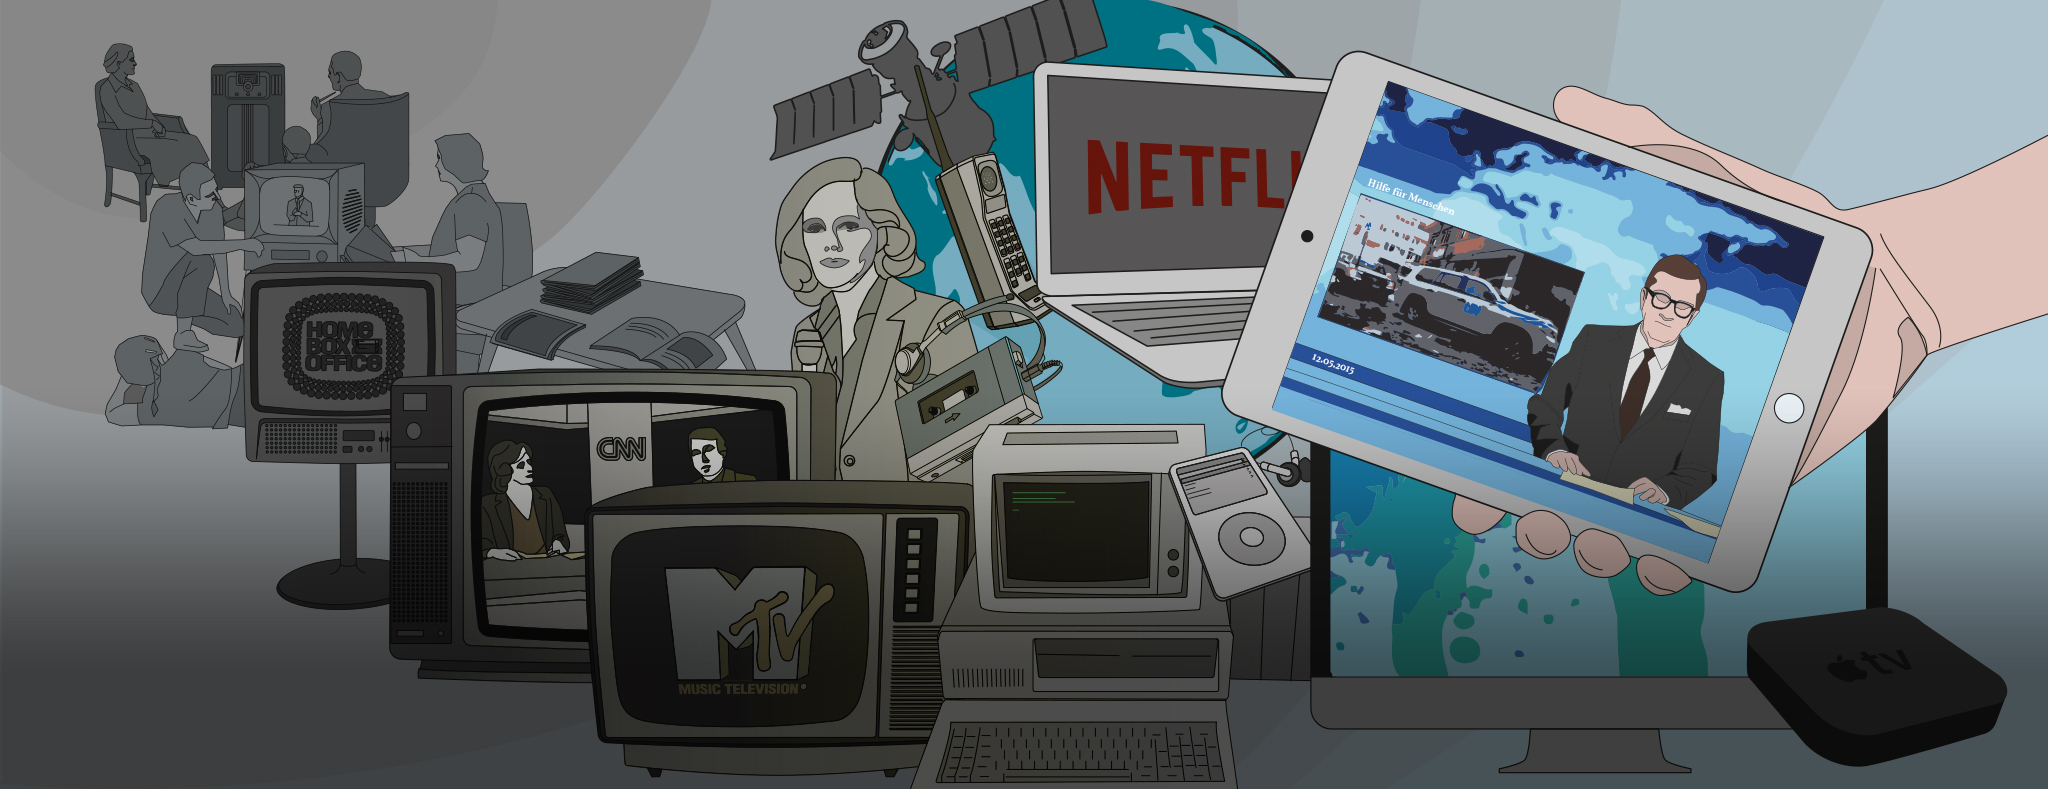 Mediacenters of the Future